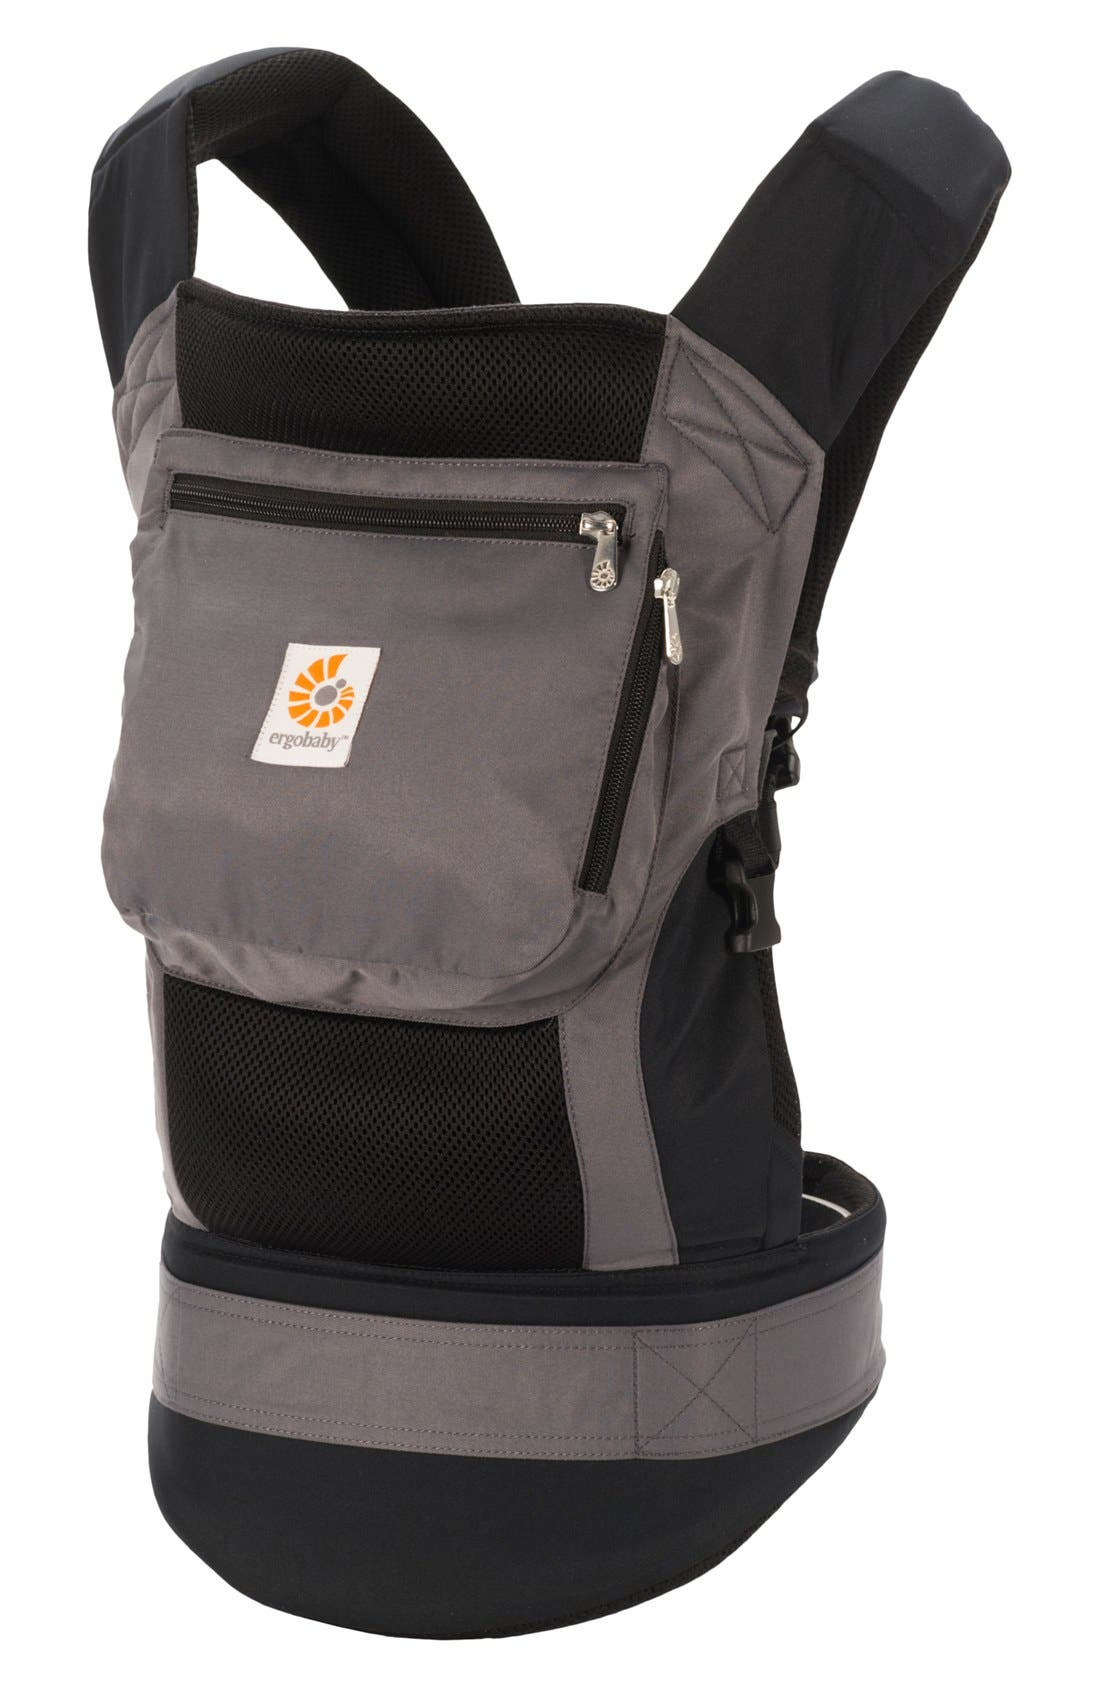 'Performance' Baby Carrier,                         Main,                         color, Charcoal / Black